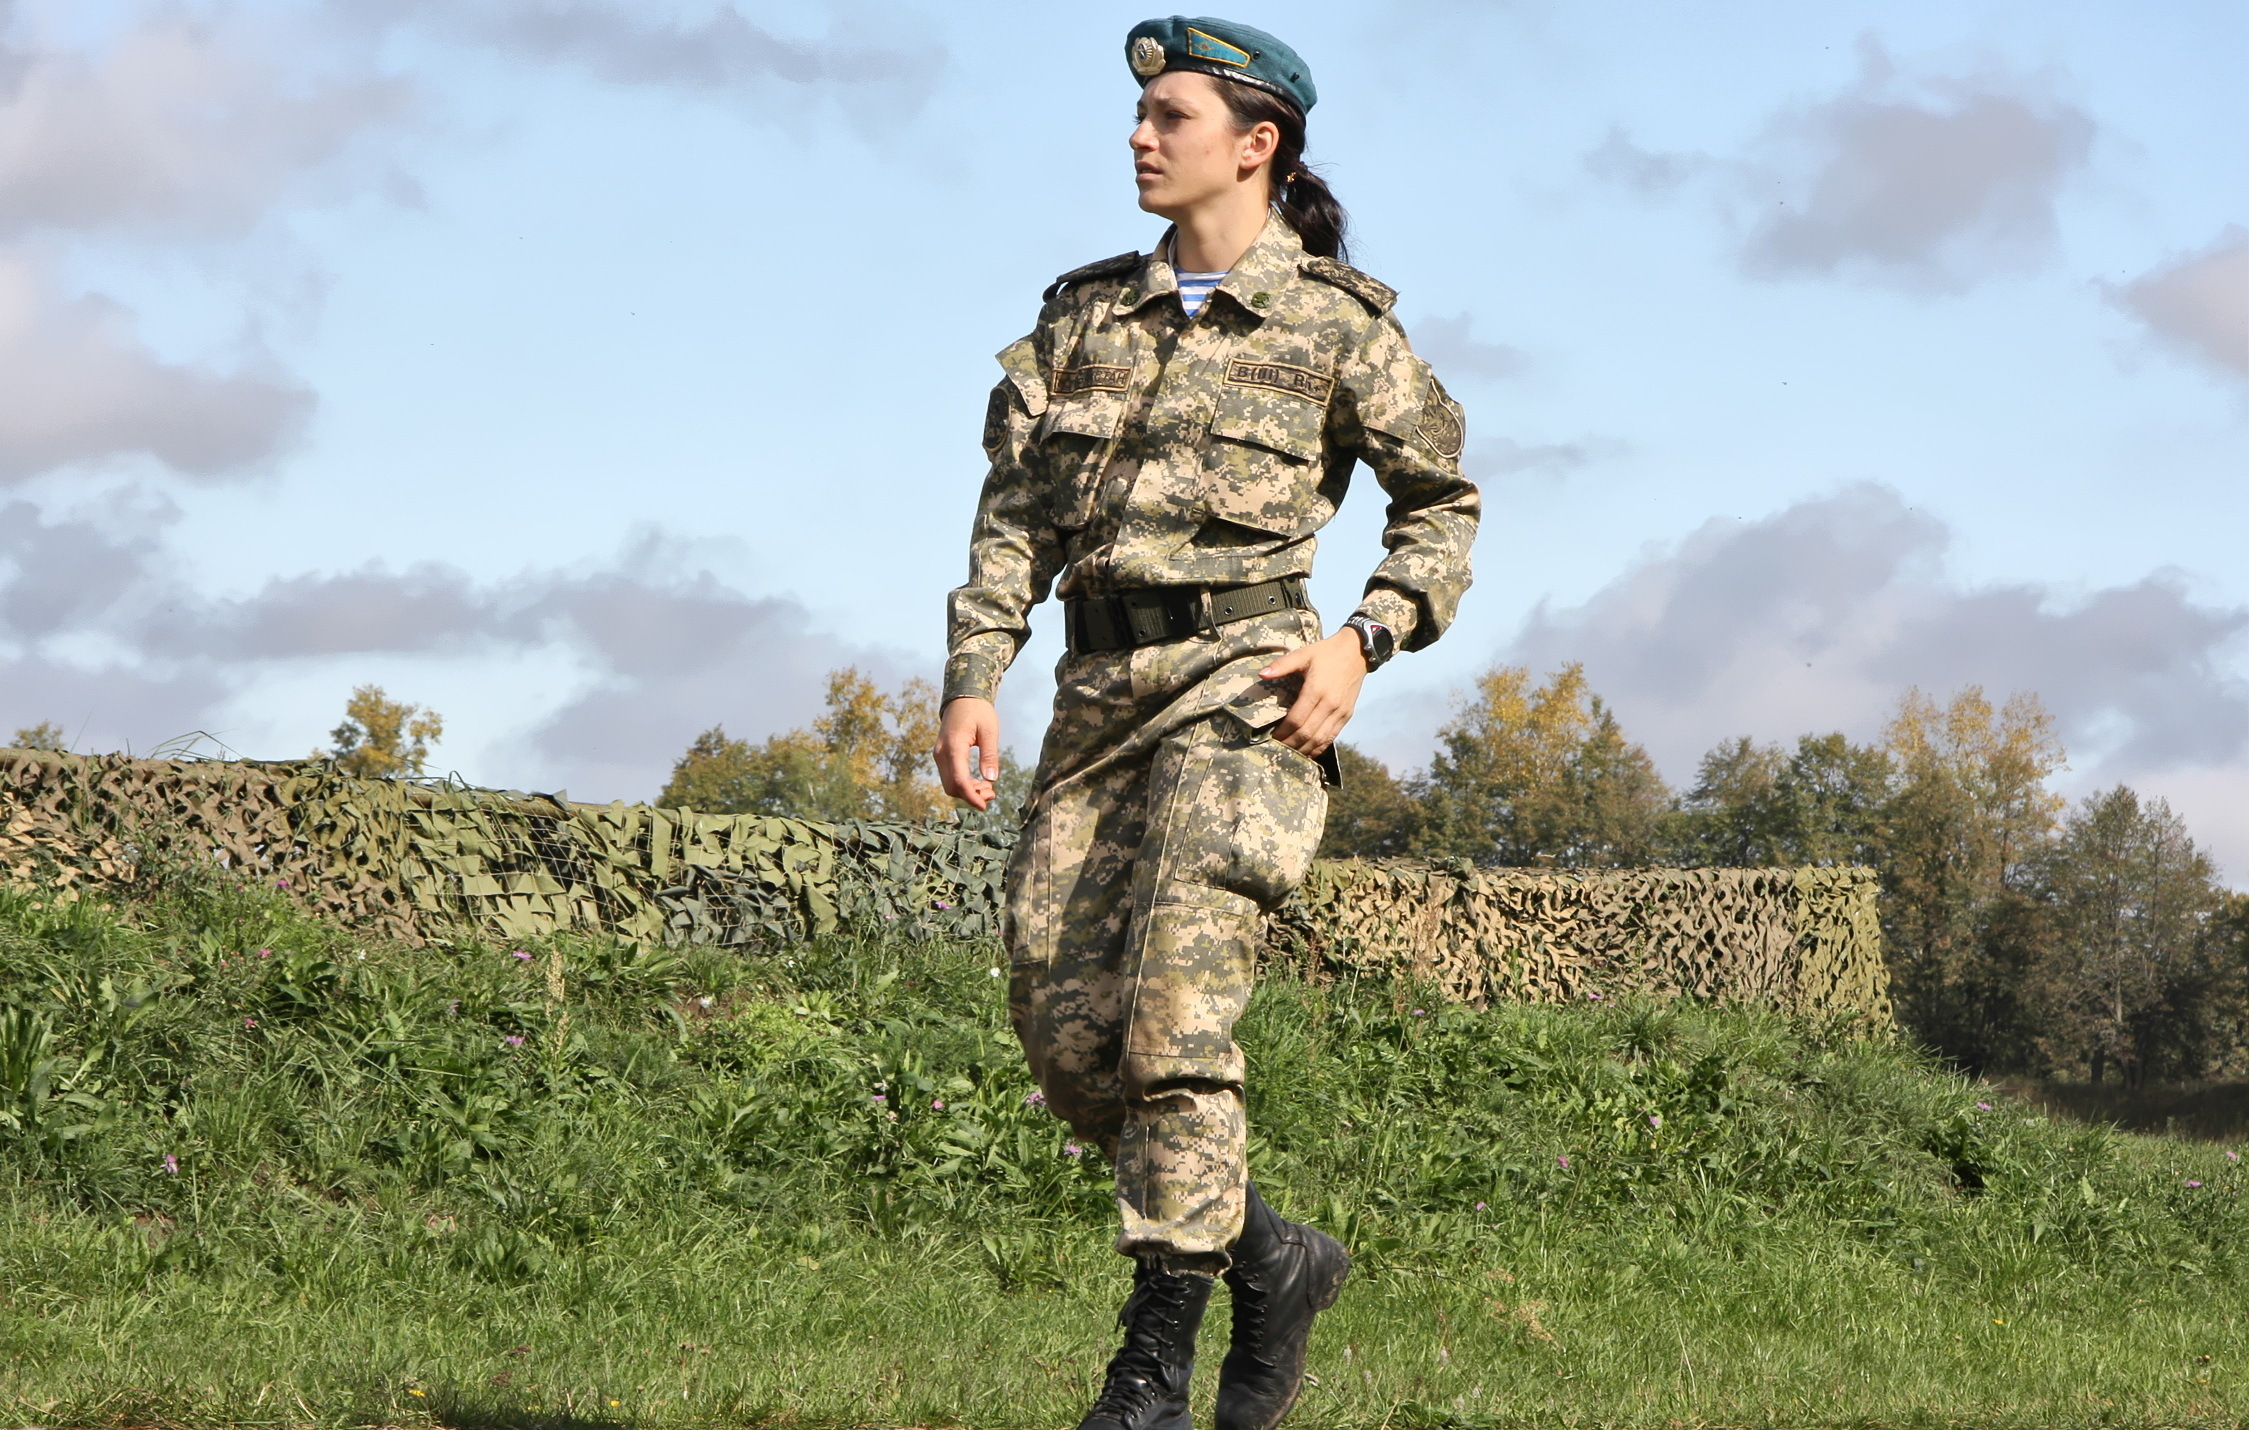 Photo Wearing boots Girls Army 2249x1430